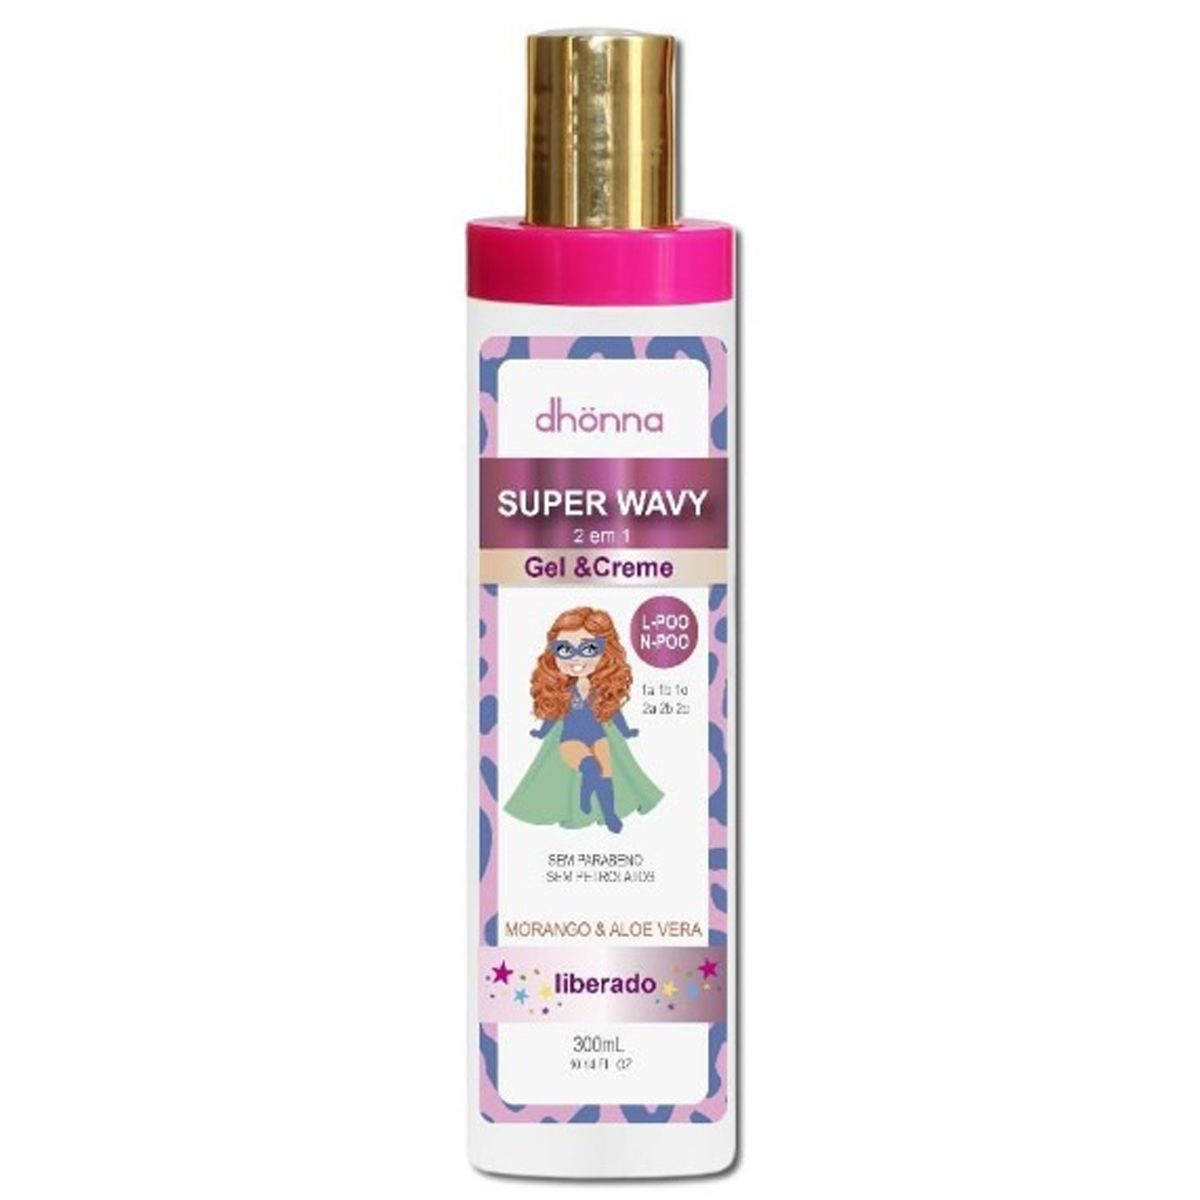 Dhonna - Super Wavy - Gel & Creme - 300ml